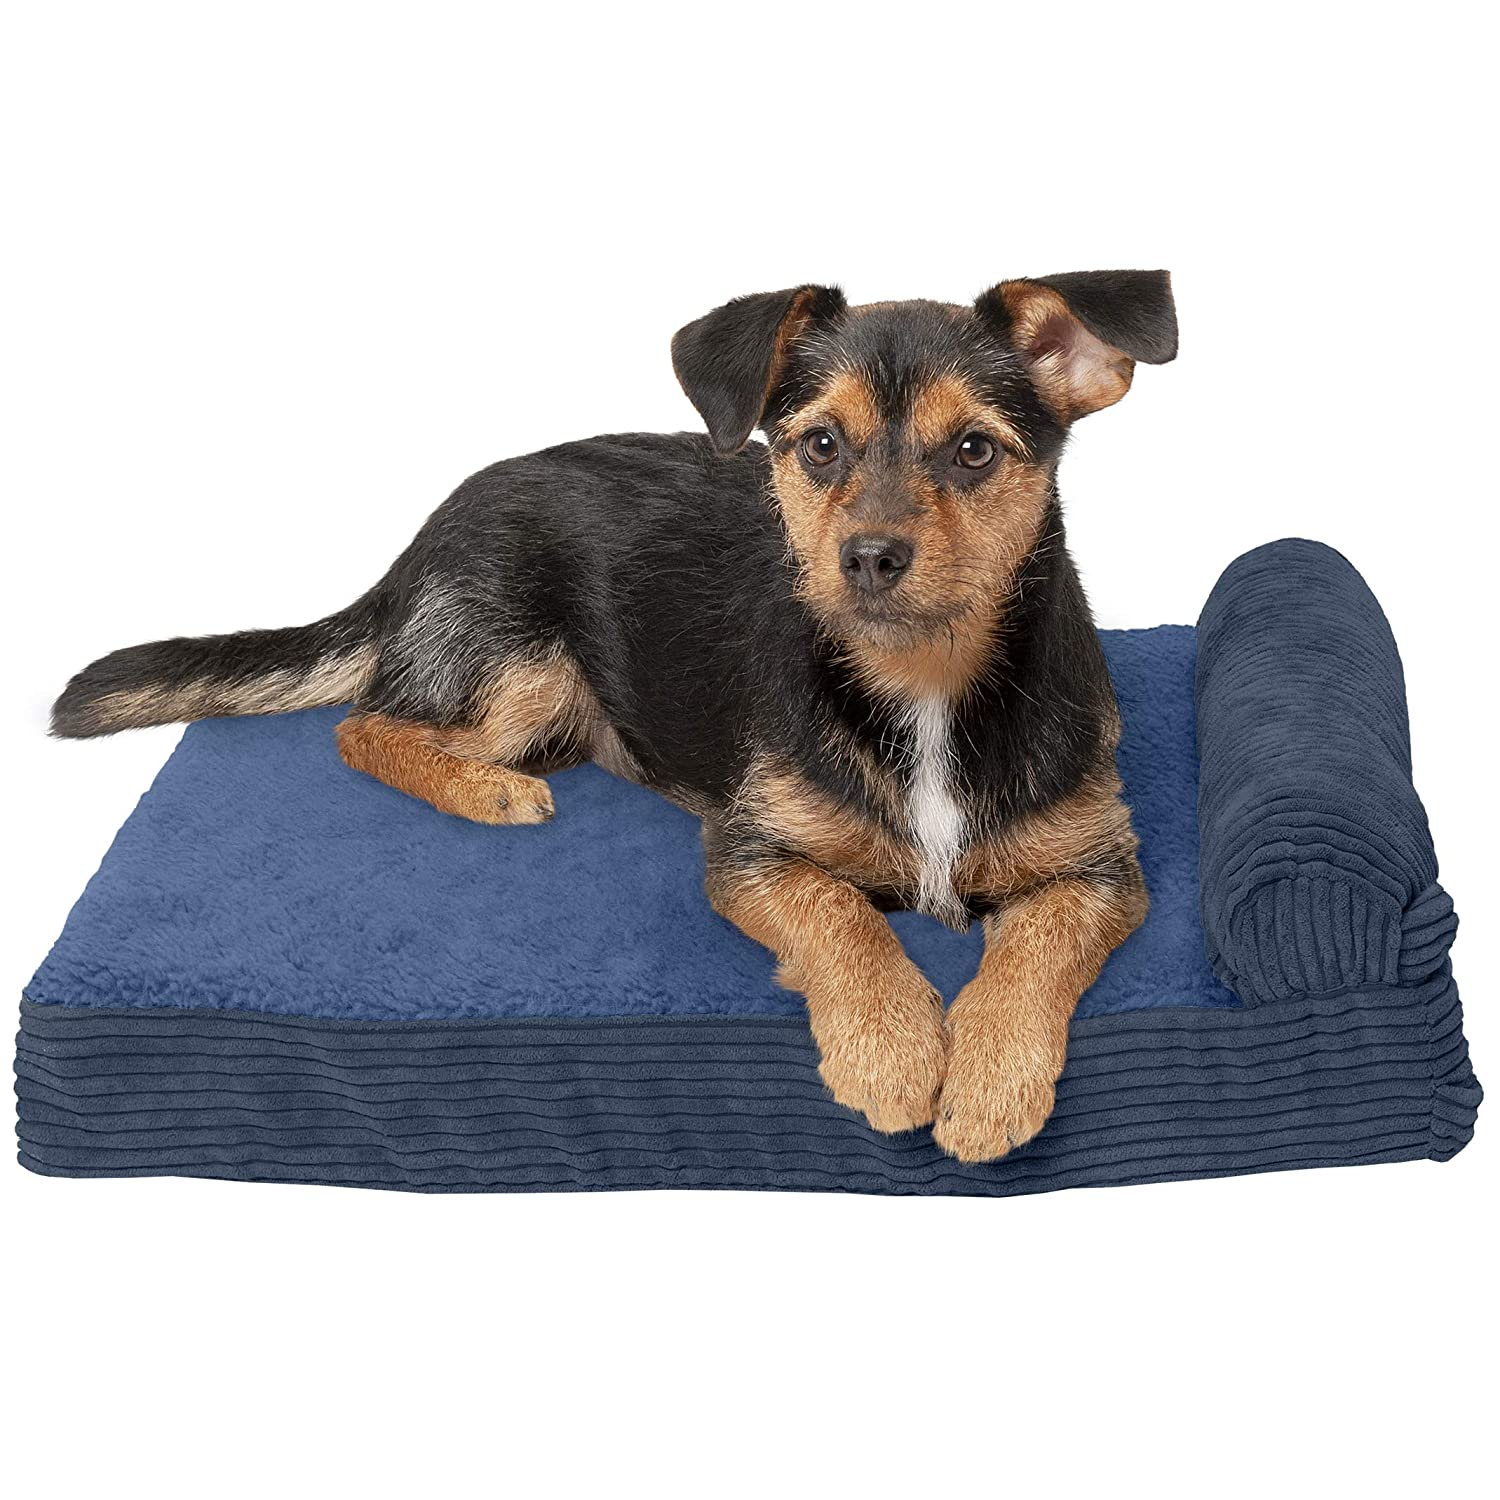 One Sided Navy bluee Small One Sided Navy bluee Small FurHaven Memory Foam Corduroy Chaise Lounge Pet Bed for Dogs and Cats, Navy, Small